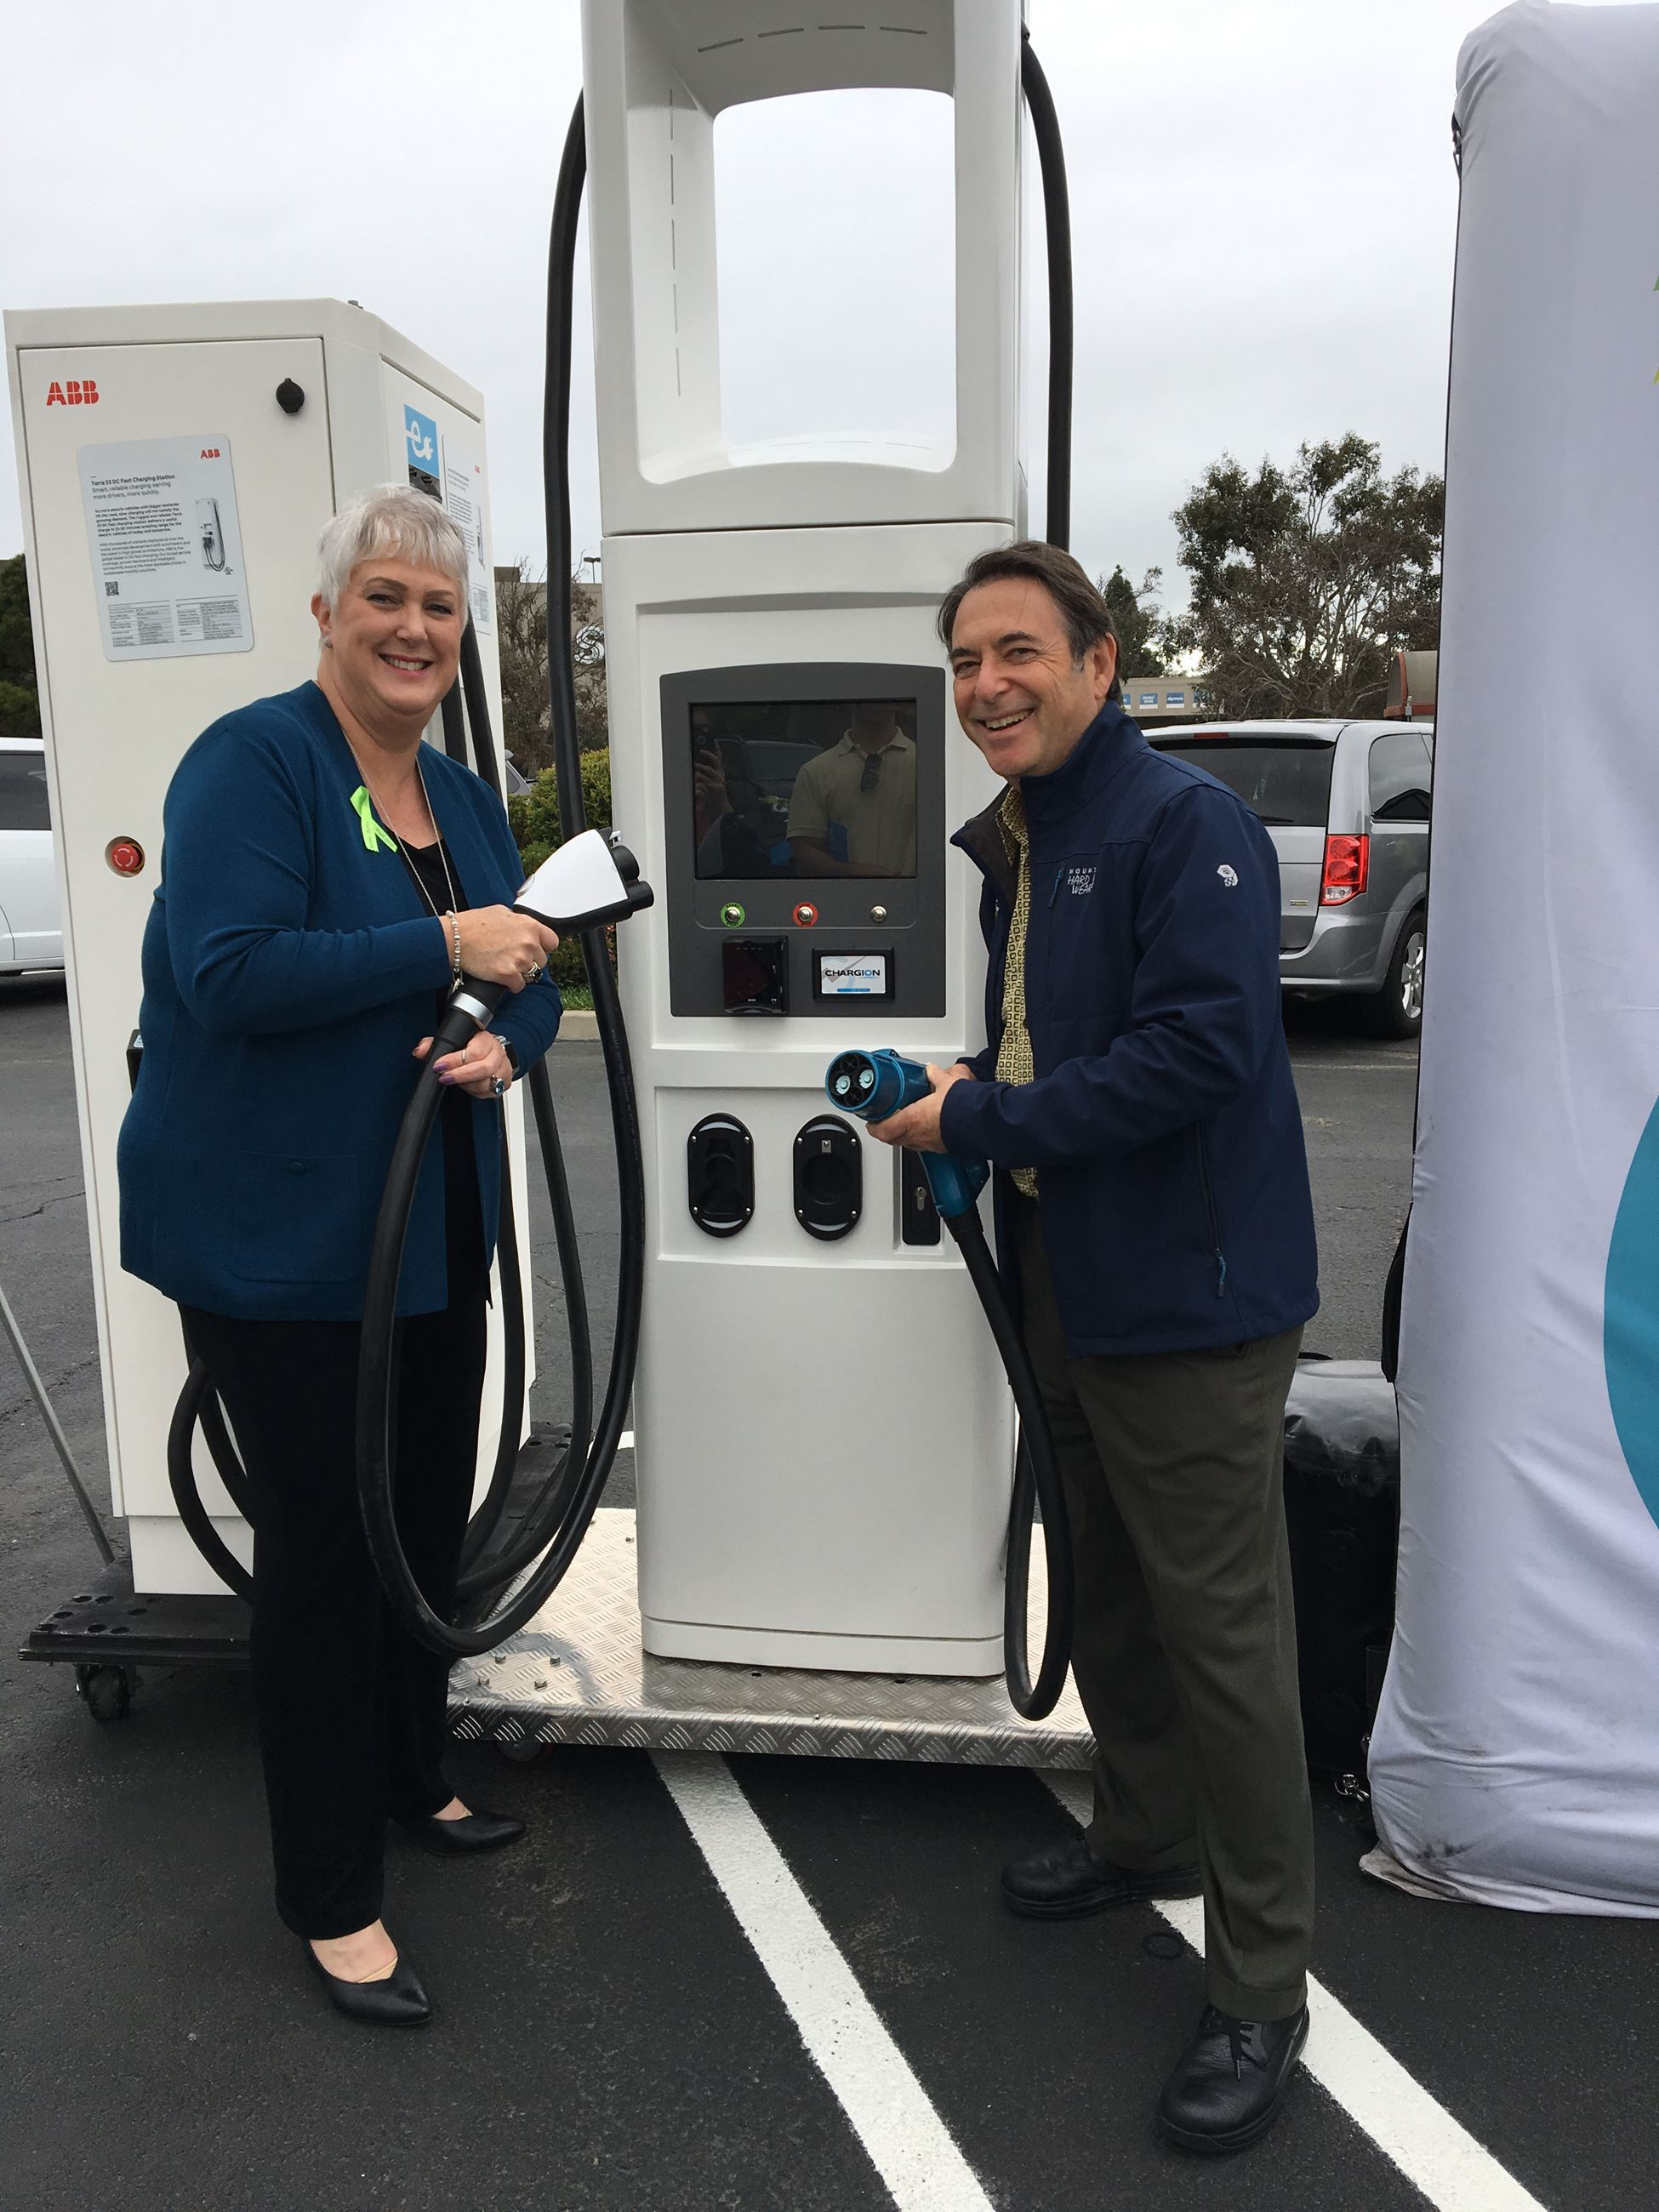 Supervisor Mitchoff and Supervisor Gioia with electric charging station